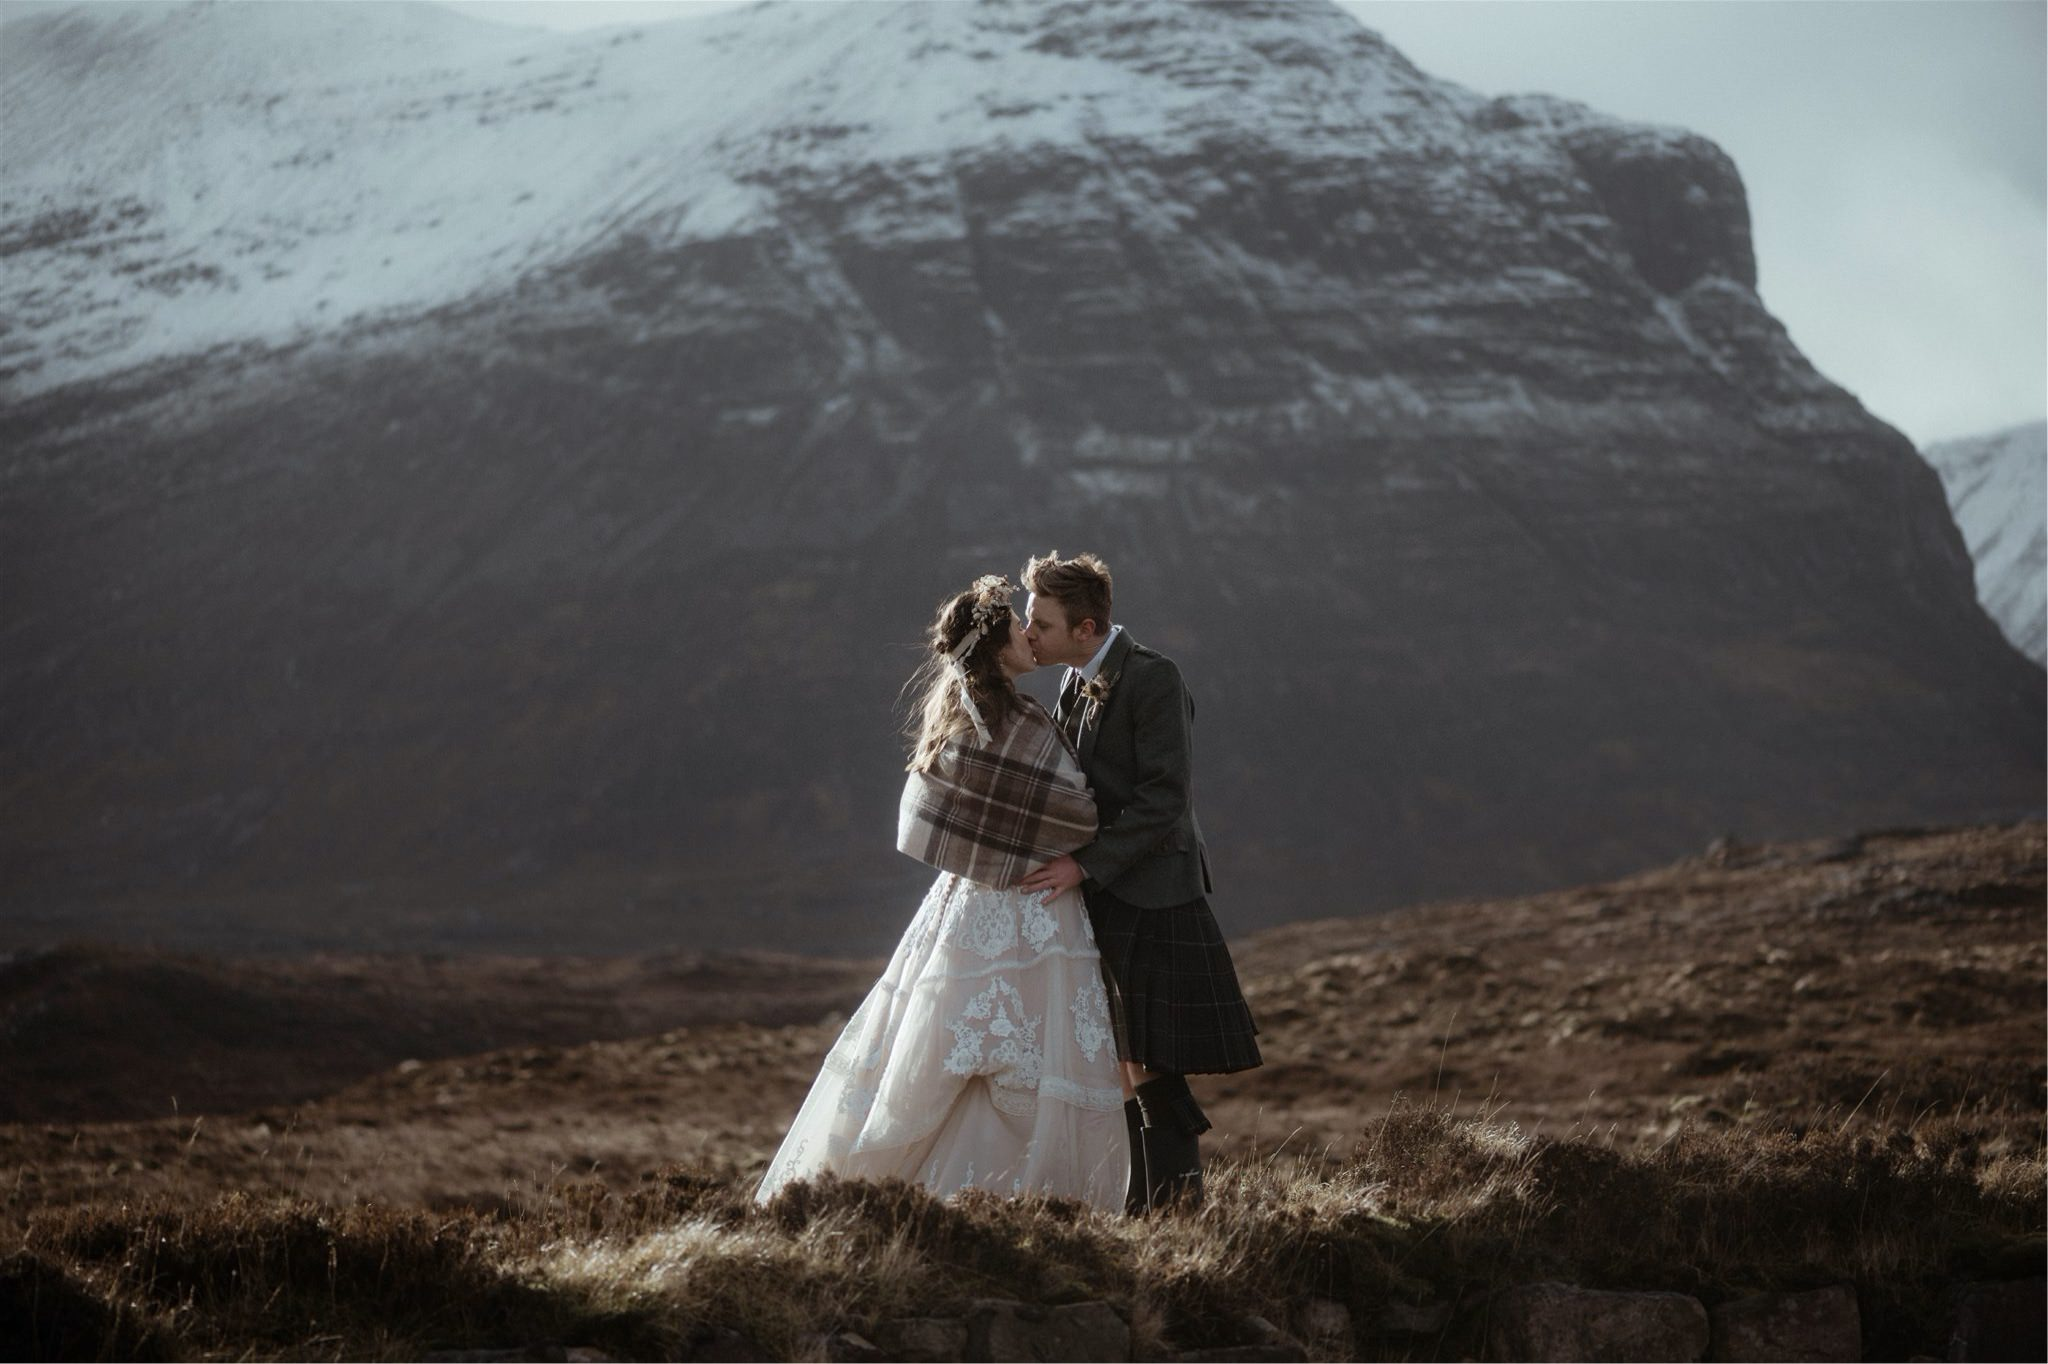 Couple kiss in front of mountain backdrop after their elopement wedding in Assynt, Scotland